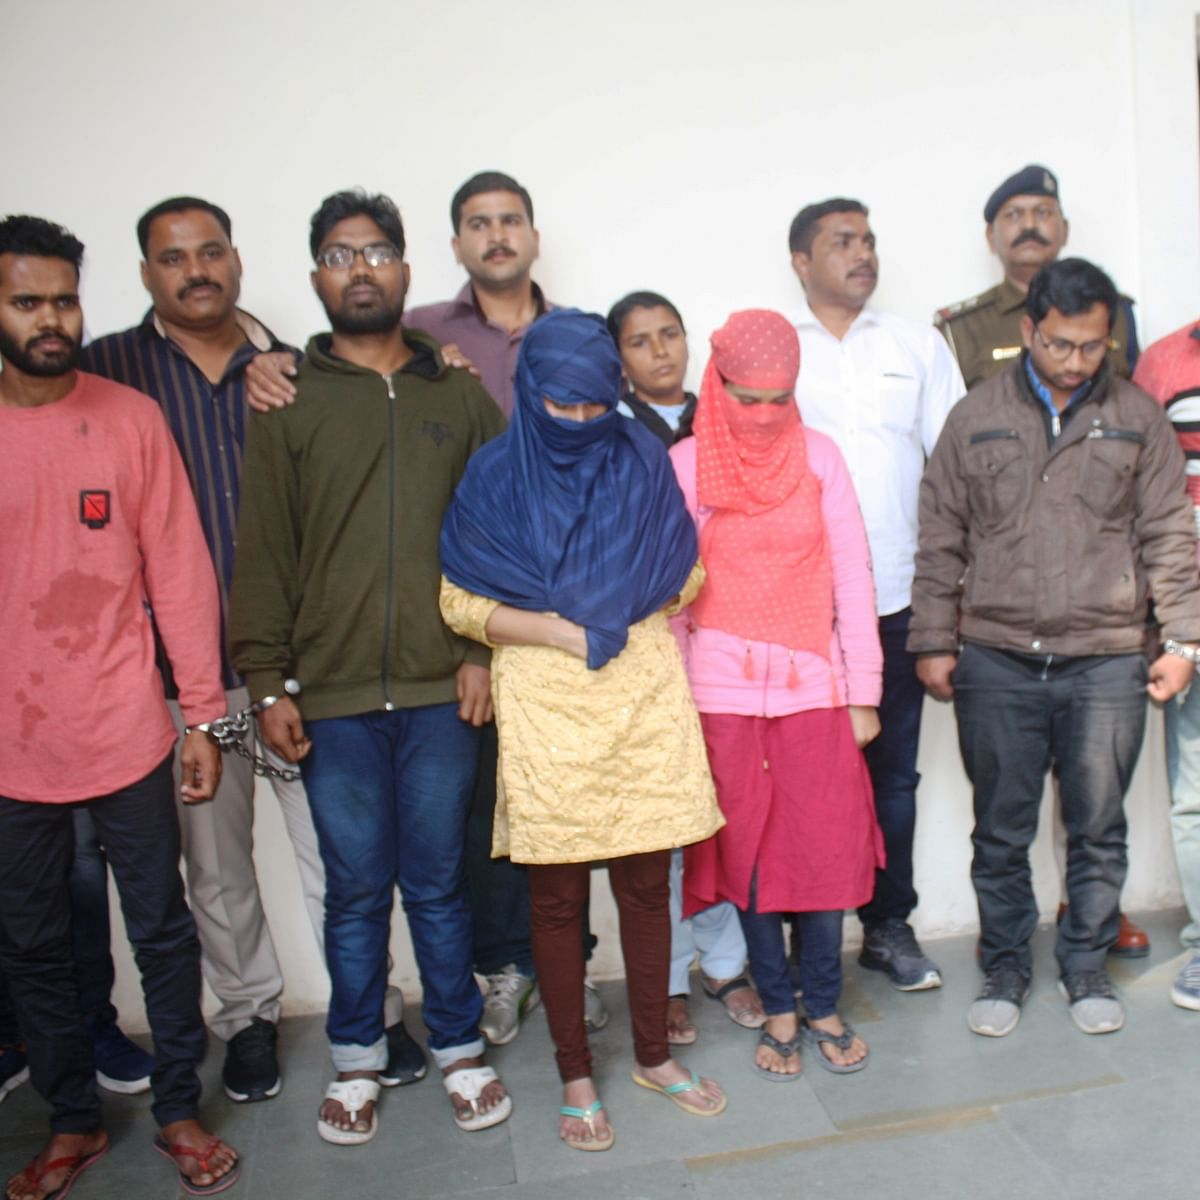 Indore: Three out of four abductors turn out to be illegal Bangladesh residents